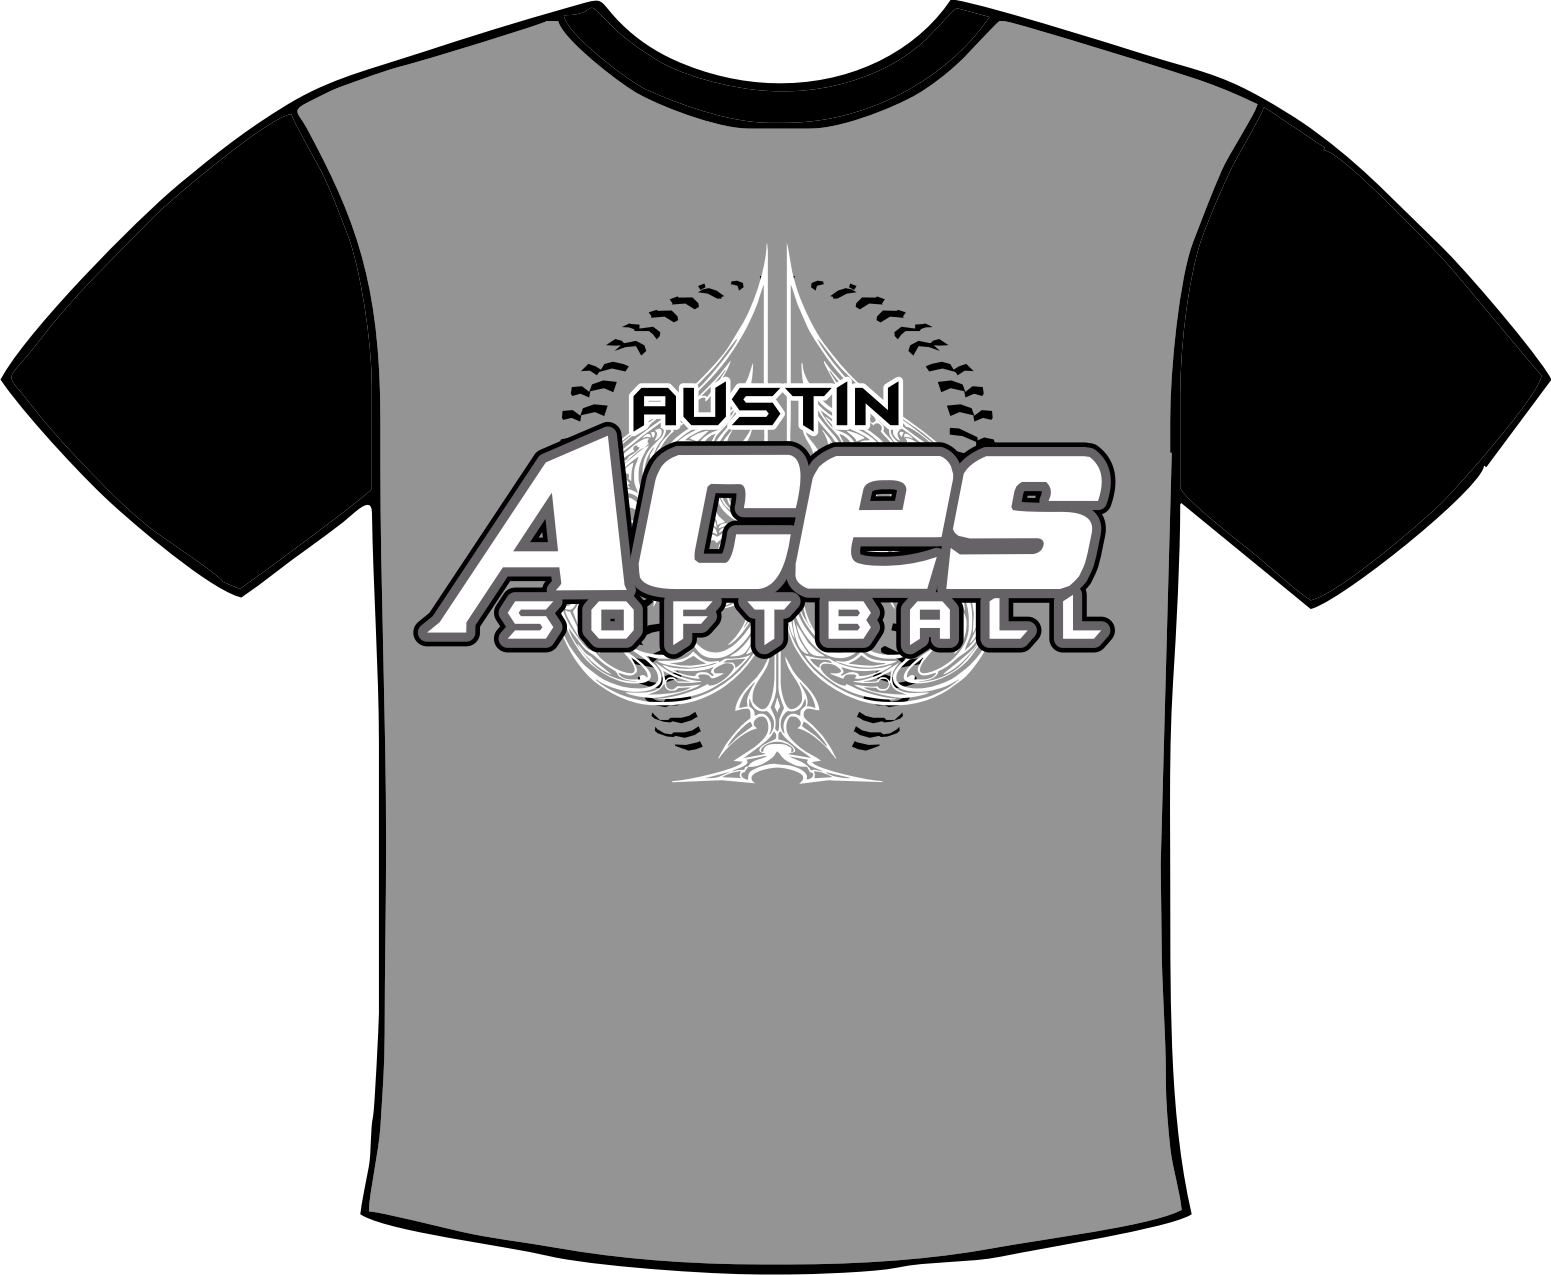 ... Softball Jersey Design Ideas. Download